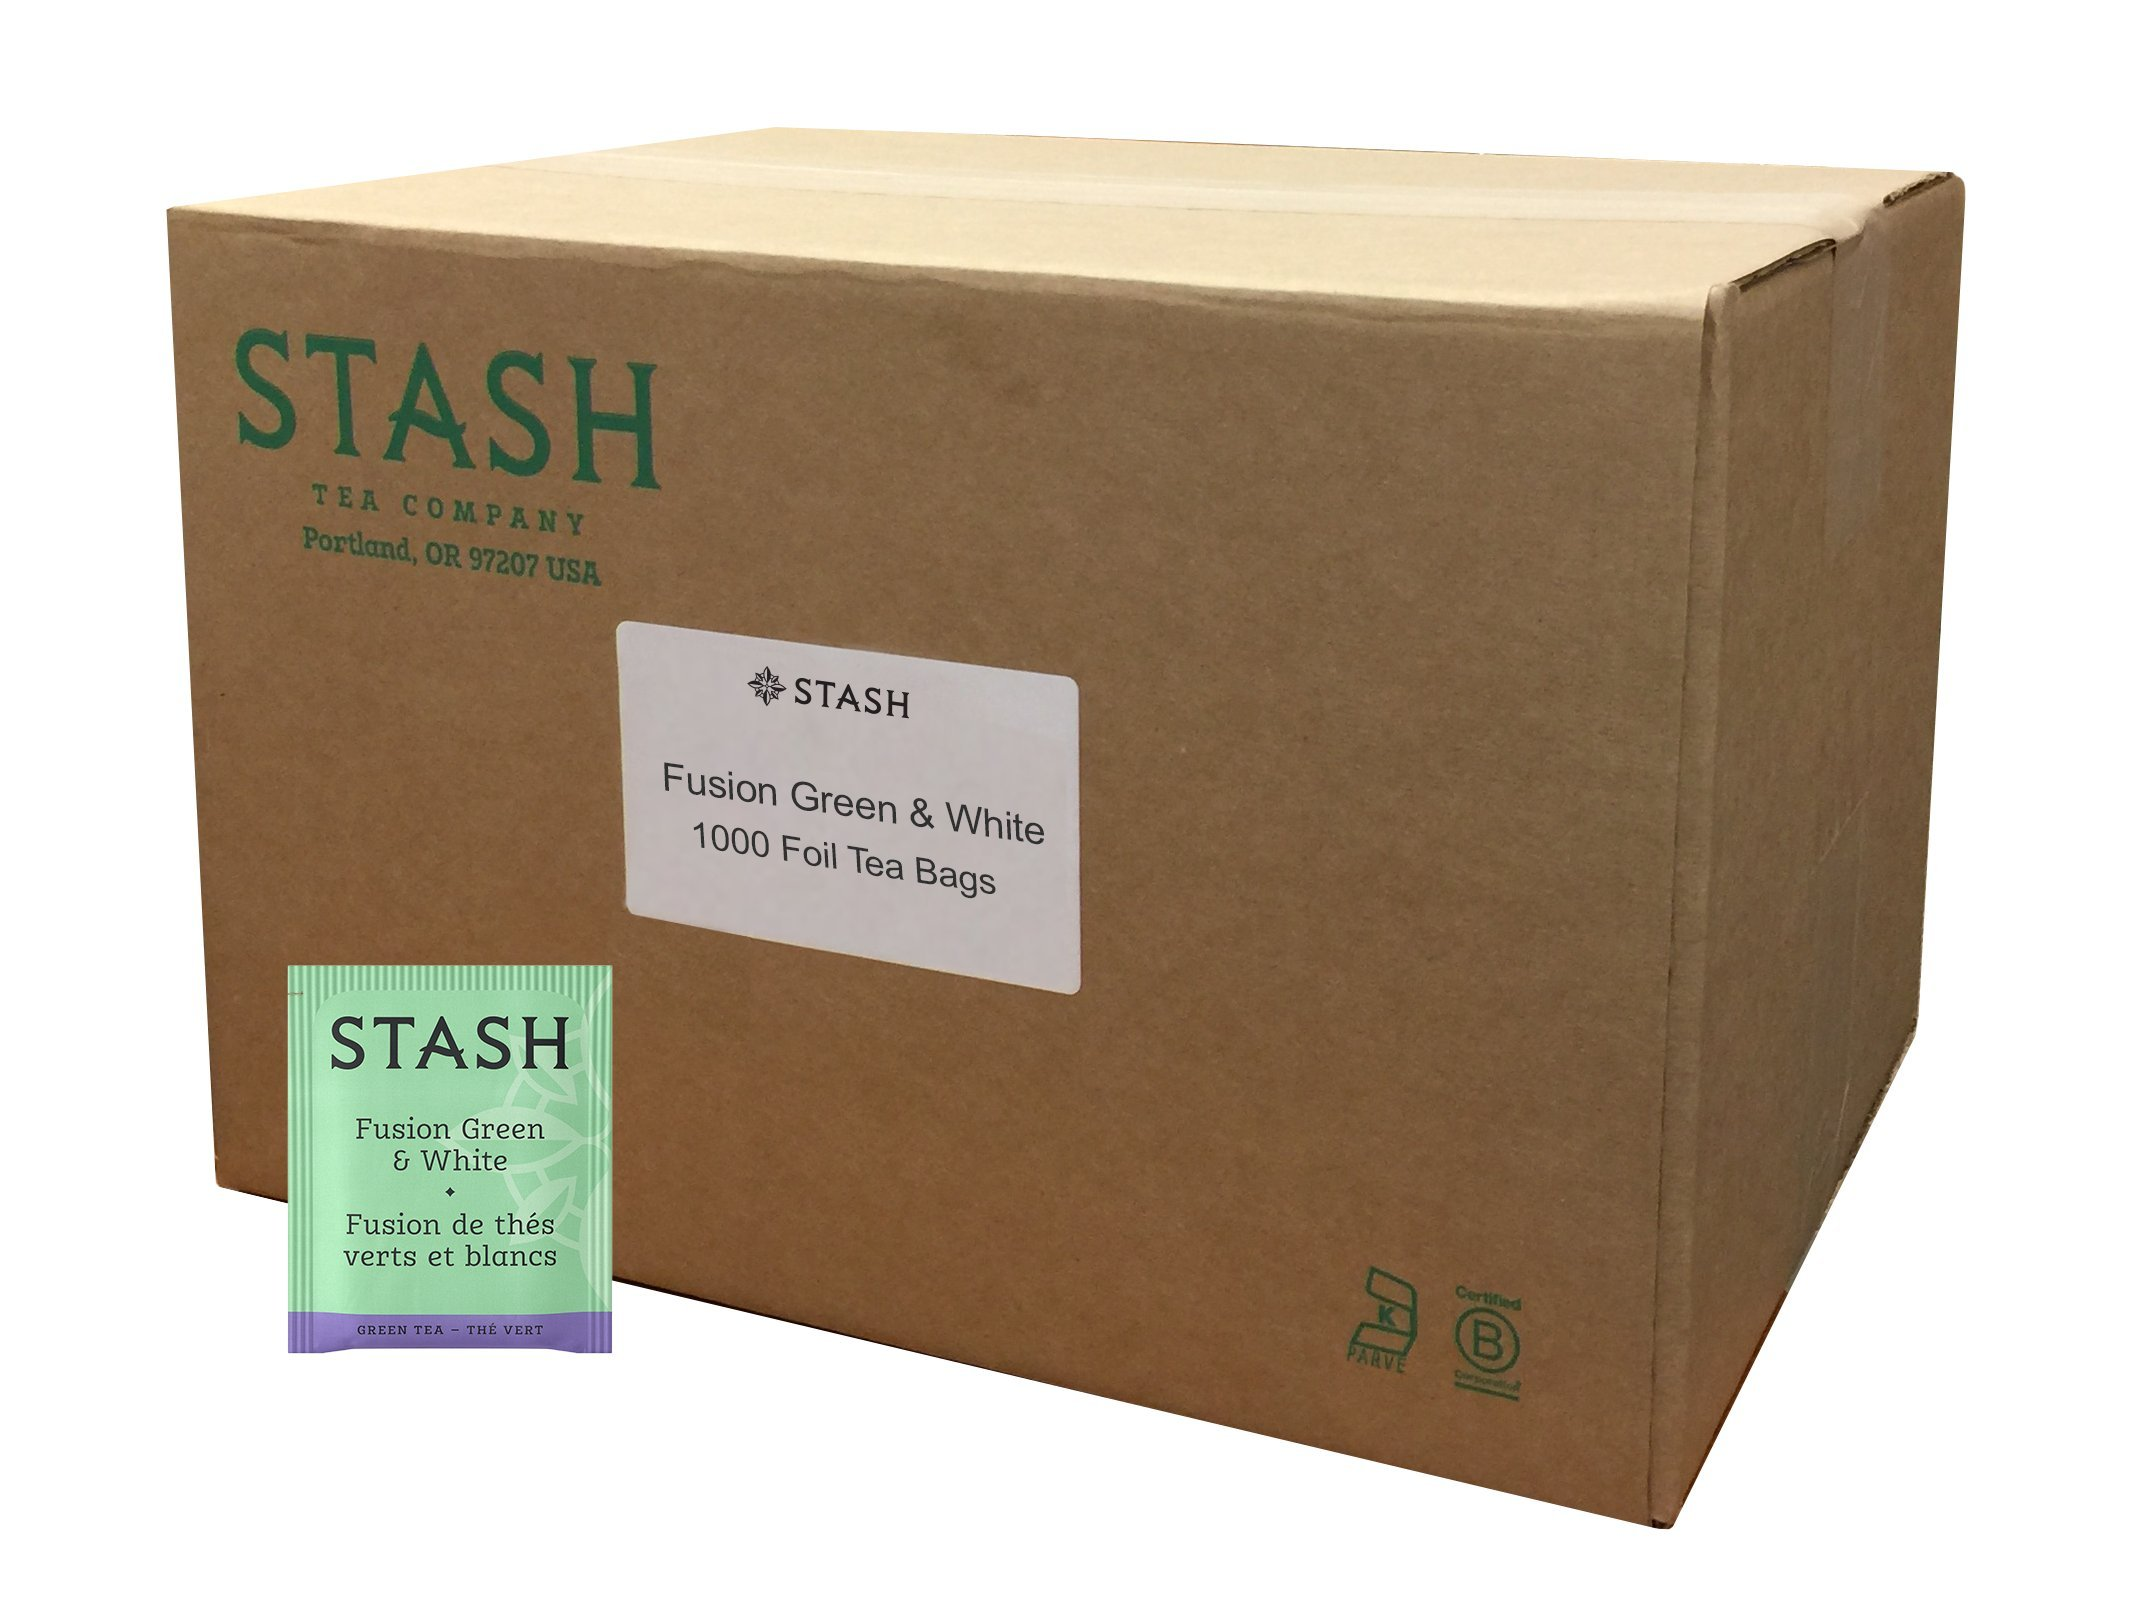 Stash Tea Fusion Green & White Tea 1000 Count Tea Bags in Foil (Packaging May Vary) Individual Tea Bags for Use in Teapots Mugs or Cups, White Tea and Green Tea, Brew Hot or Iced by Stash Tea